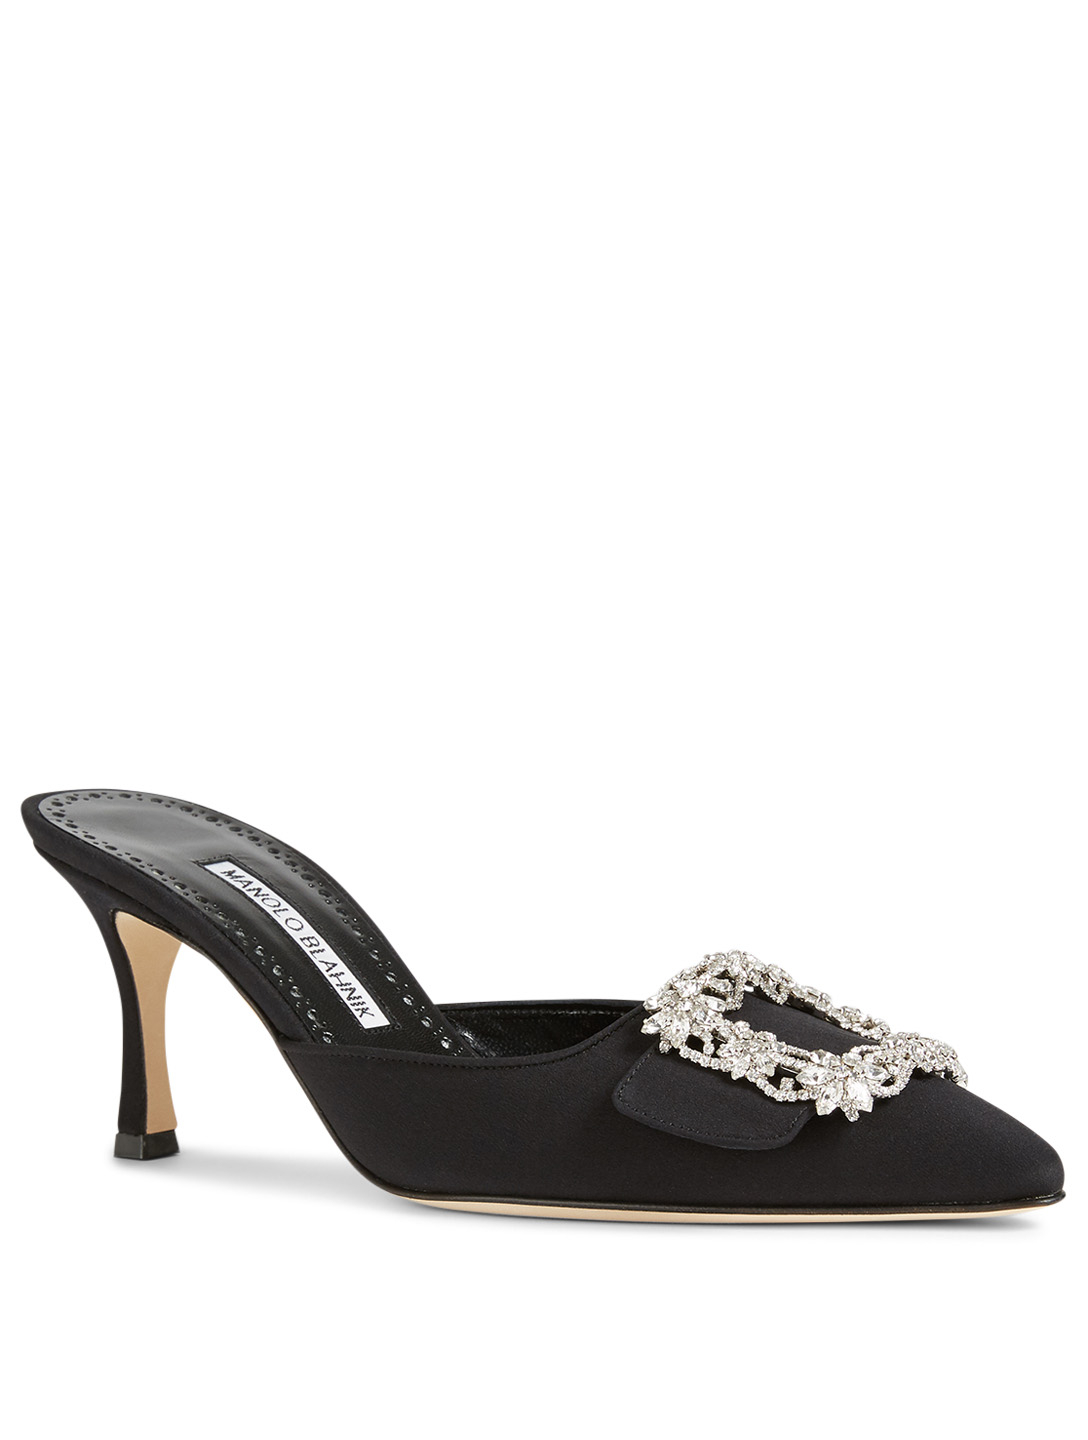 MANOLO BLAHNIK Maysale Jewel Silk Mules Women's Black